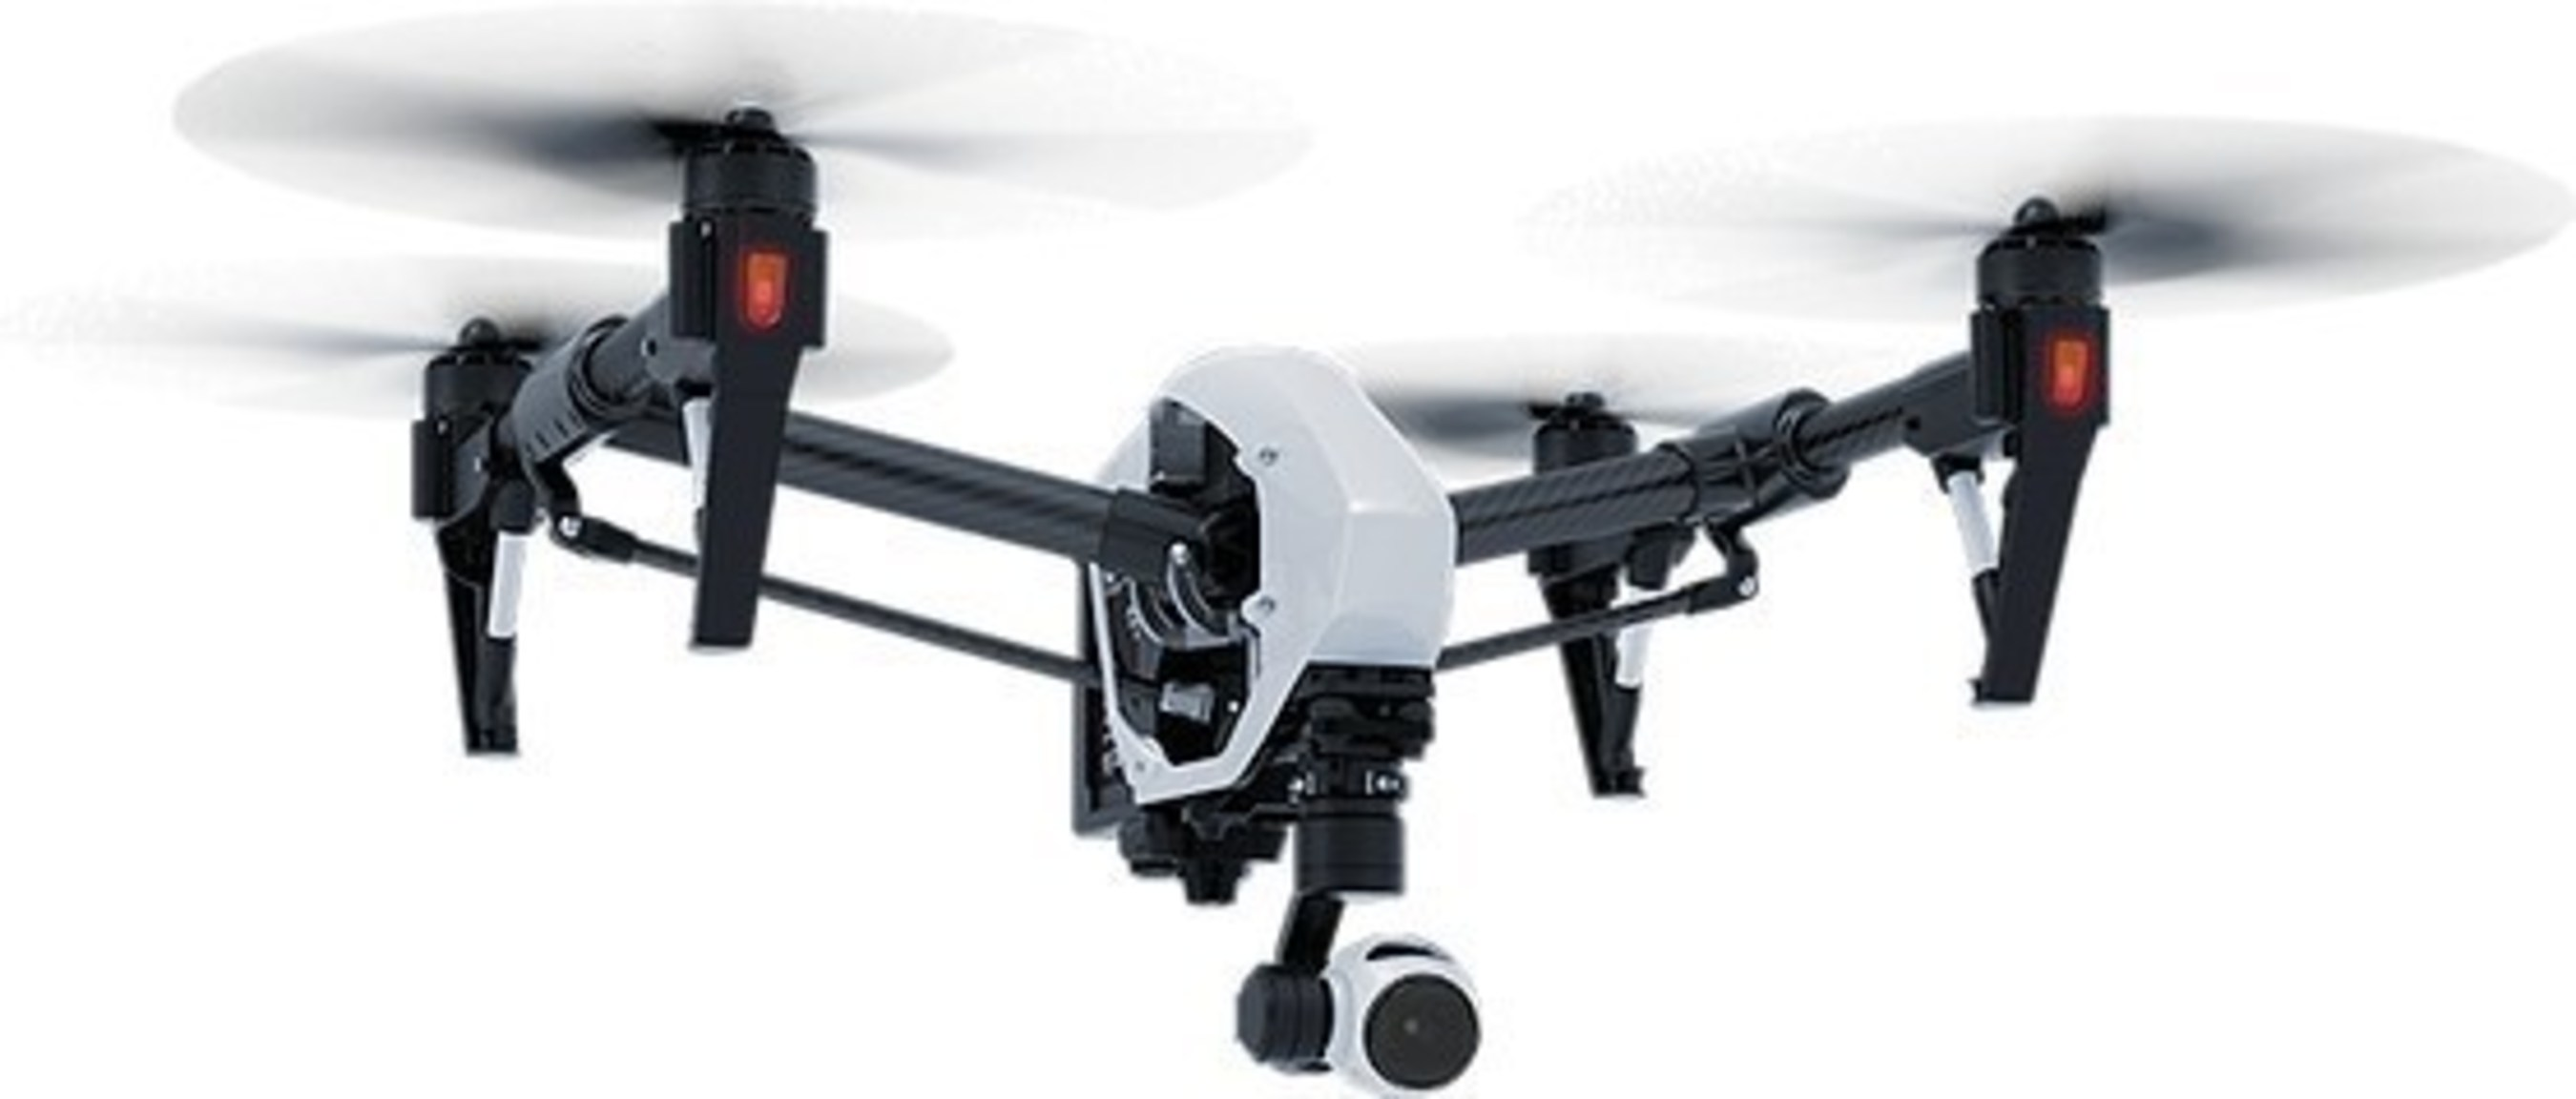 ROTOR FX Launches Drone-Classifieds.com